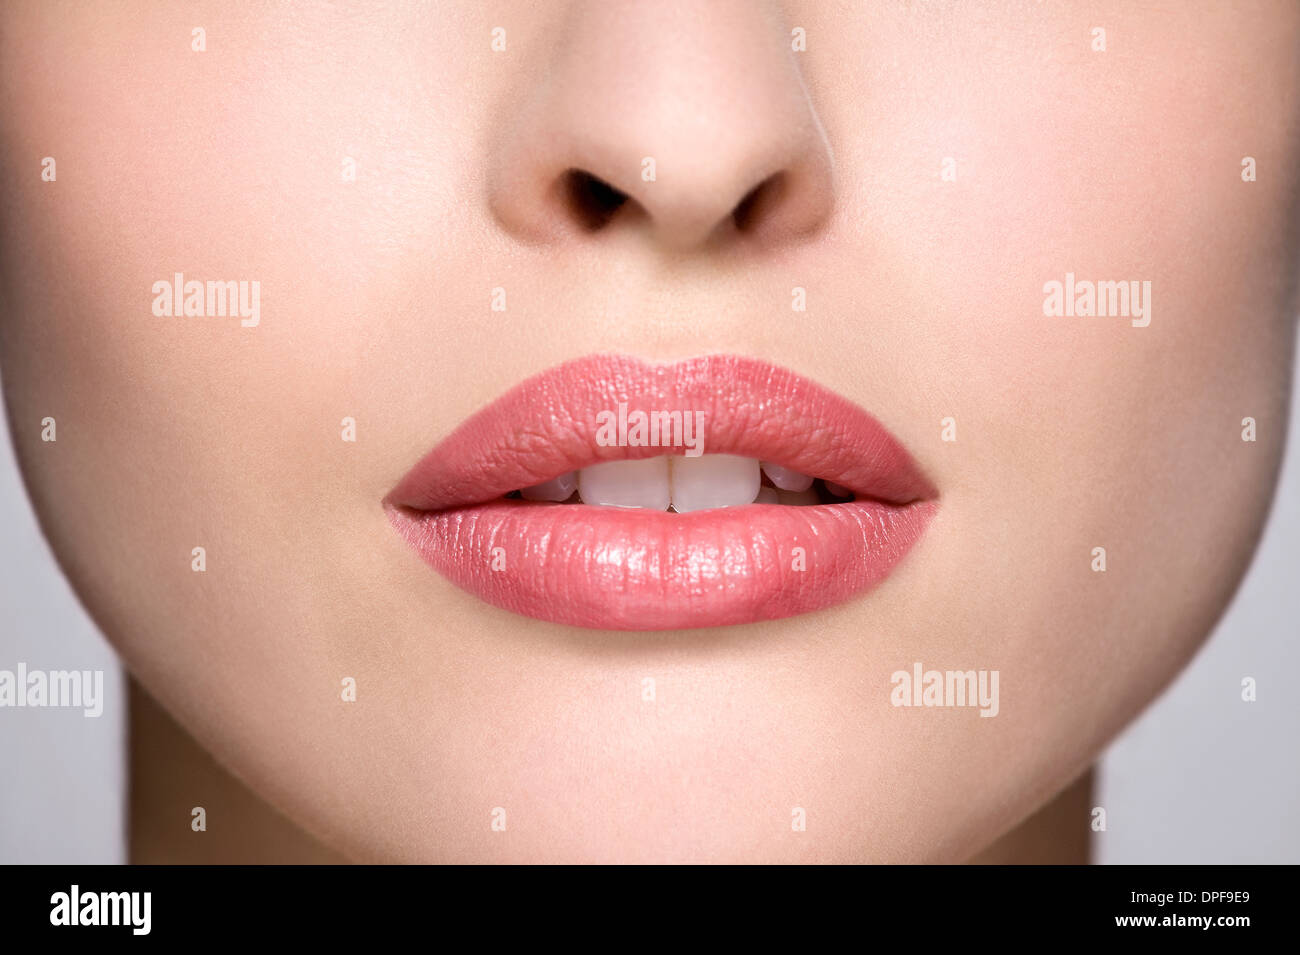 Mouth immagini mouth fotos stock alamy for Piscina mund